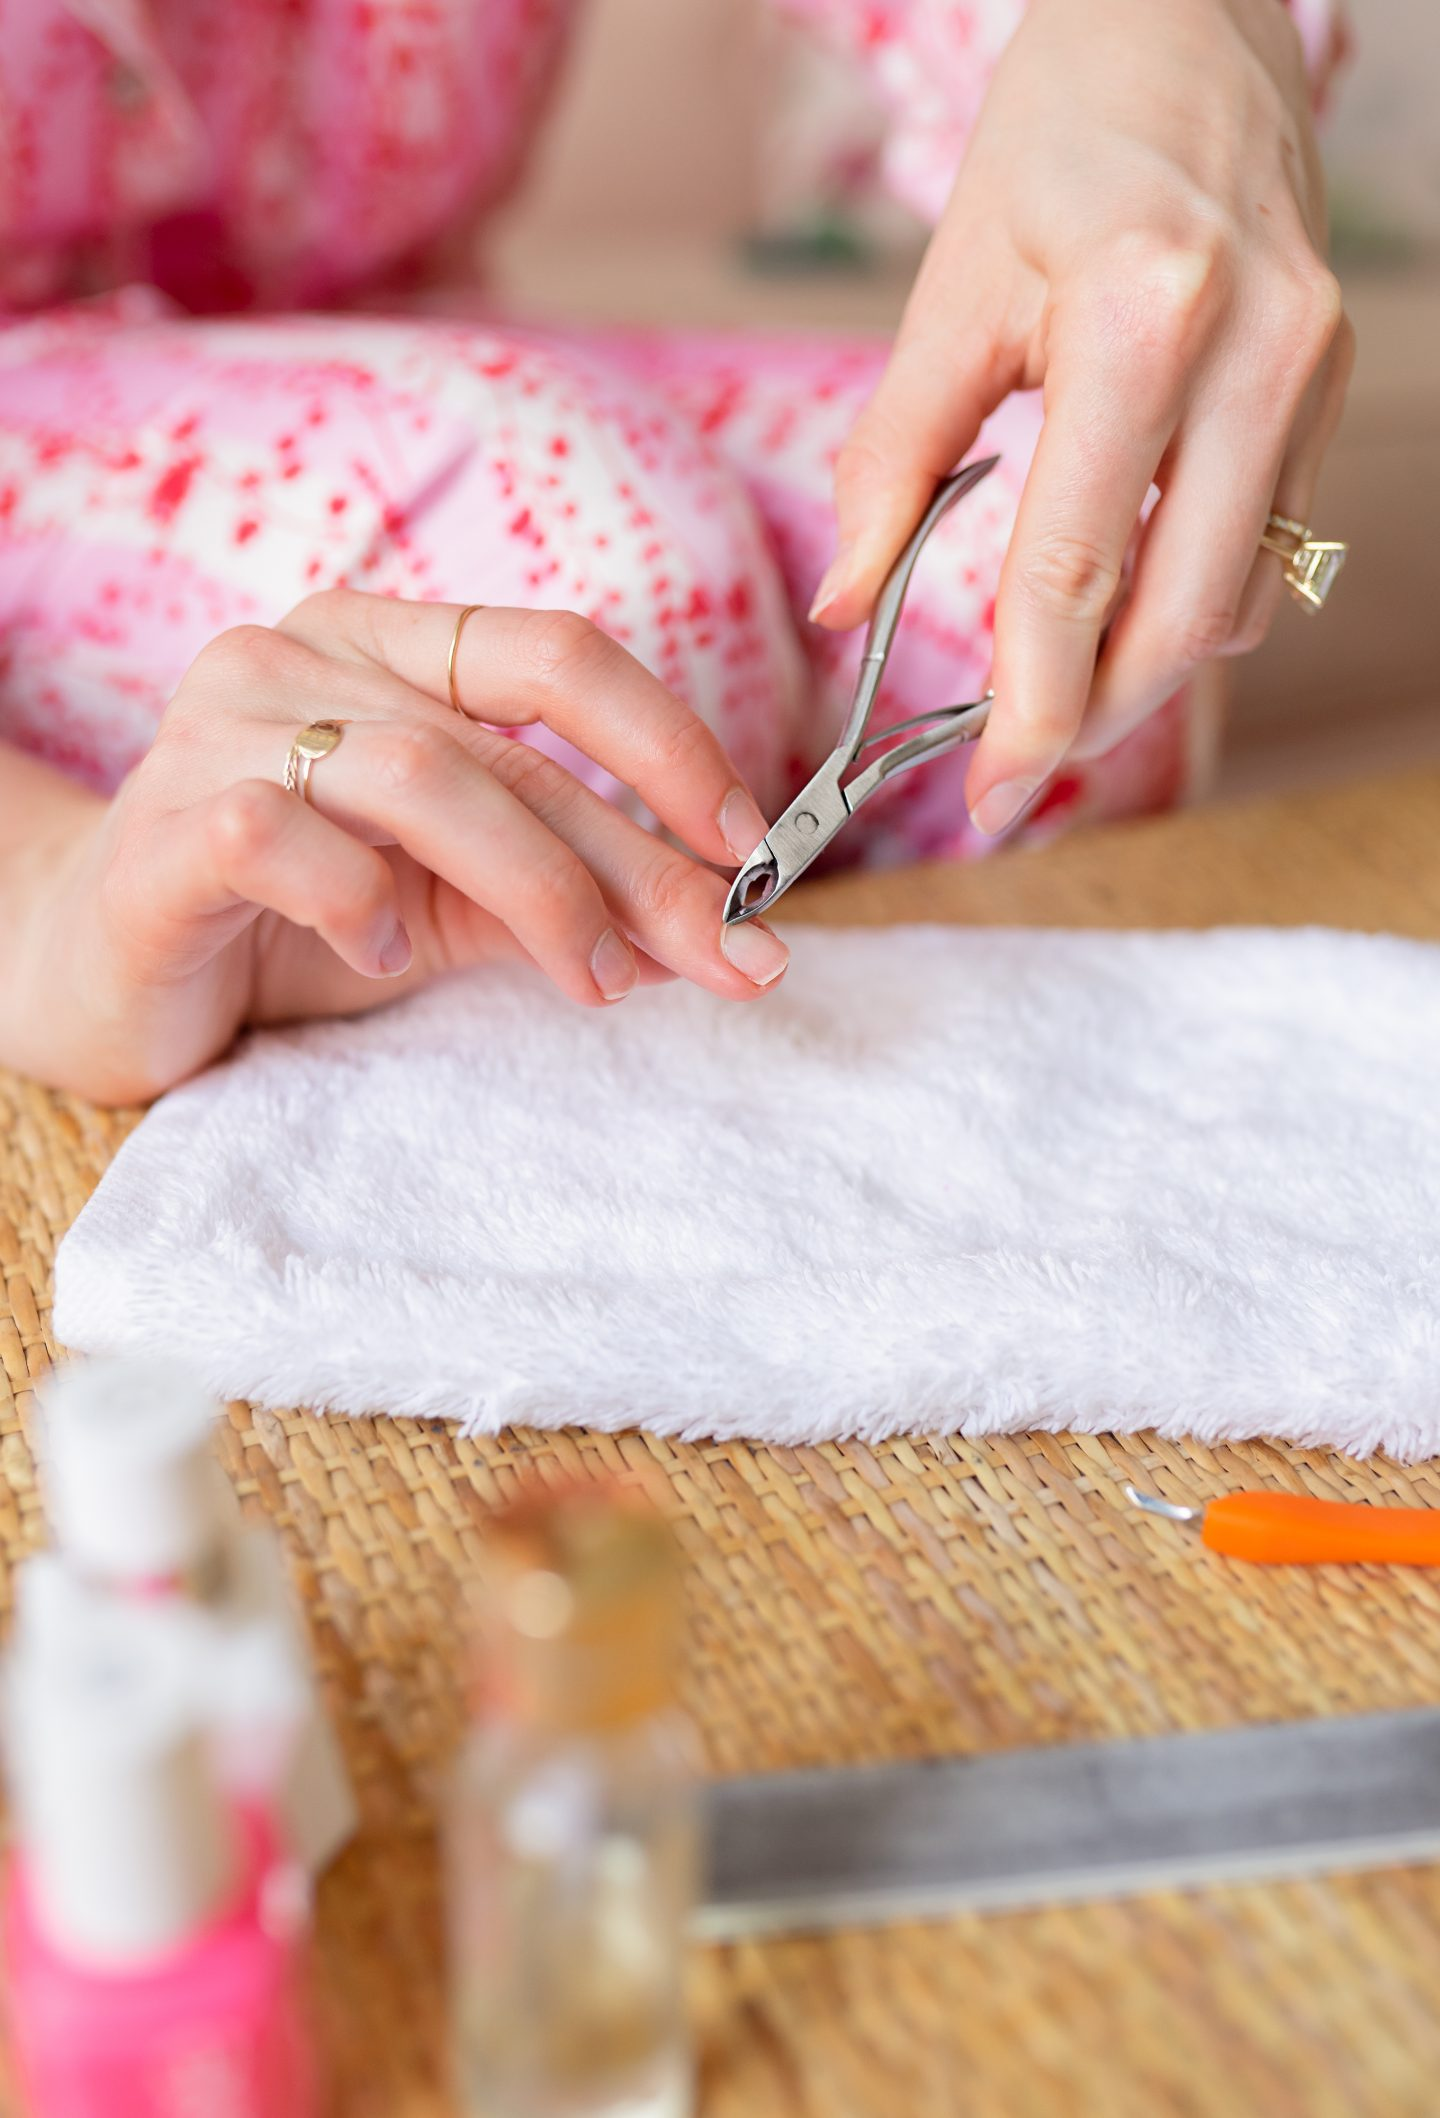 Ashley Brooke trimming cuticles and for DIY manicure